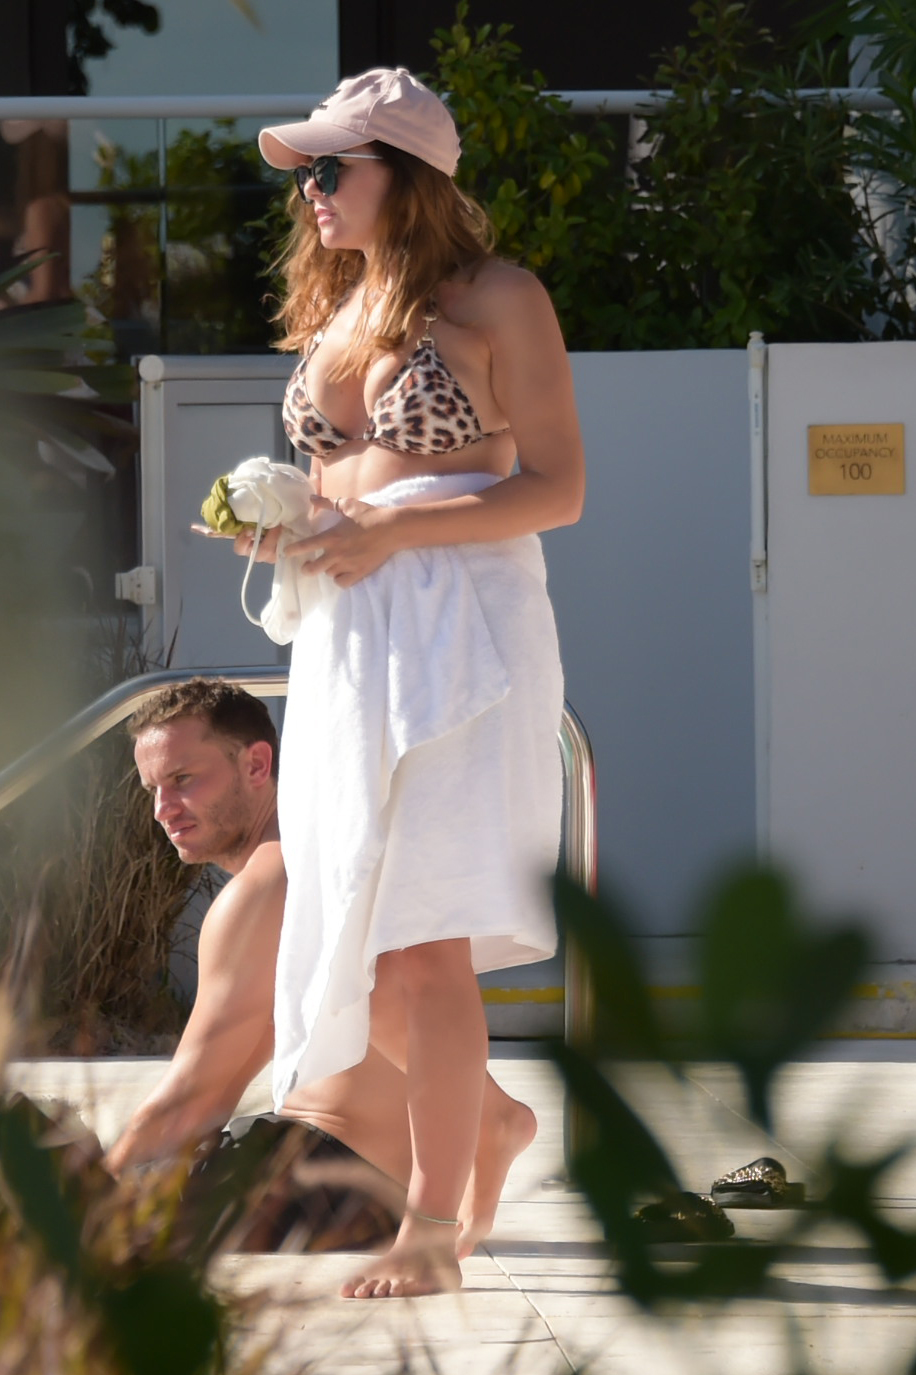 Imogen Thomas shows off her cleavage as she hits the pool in Miami 11/18/17